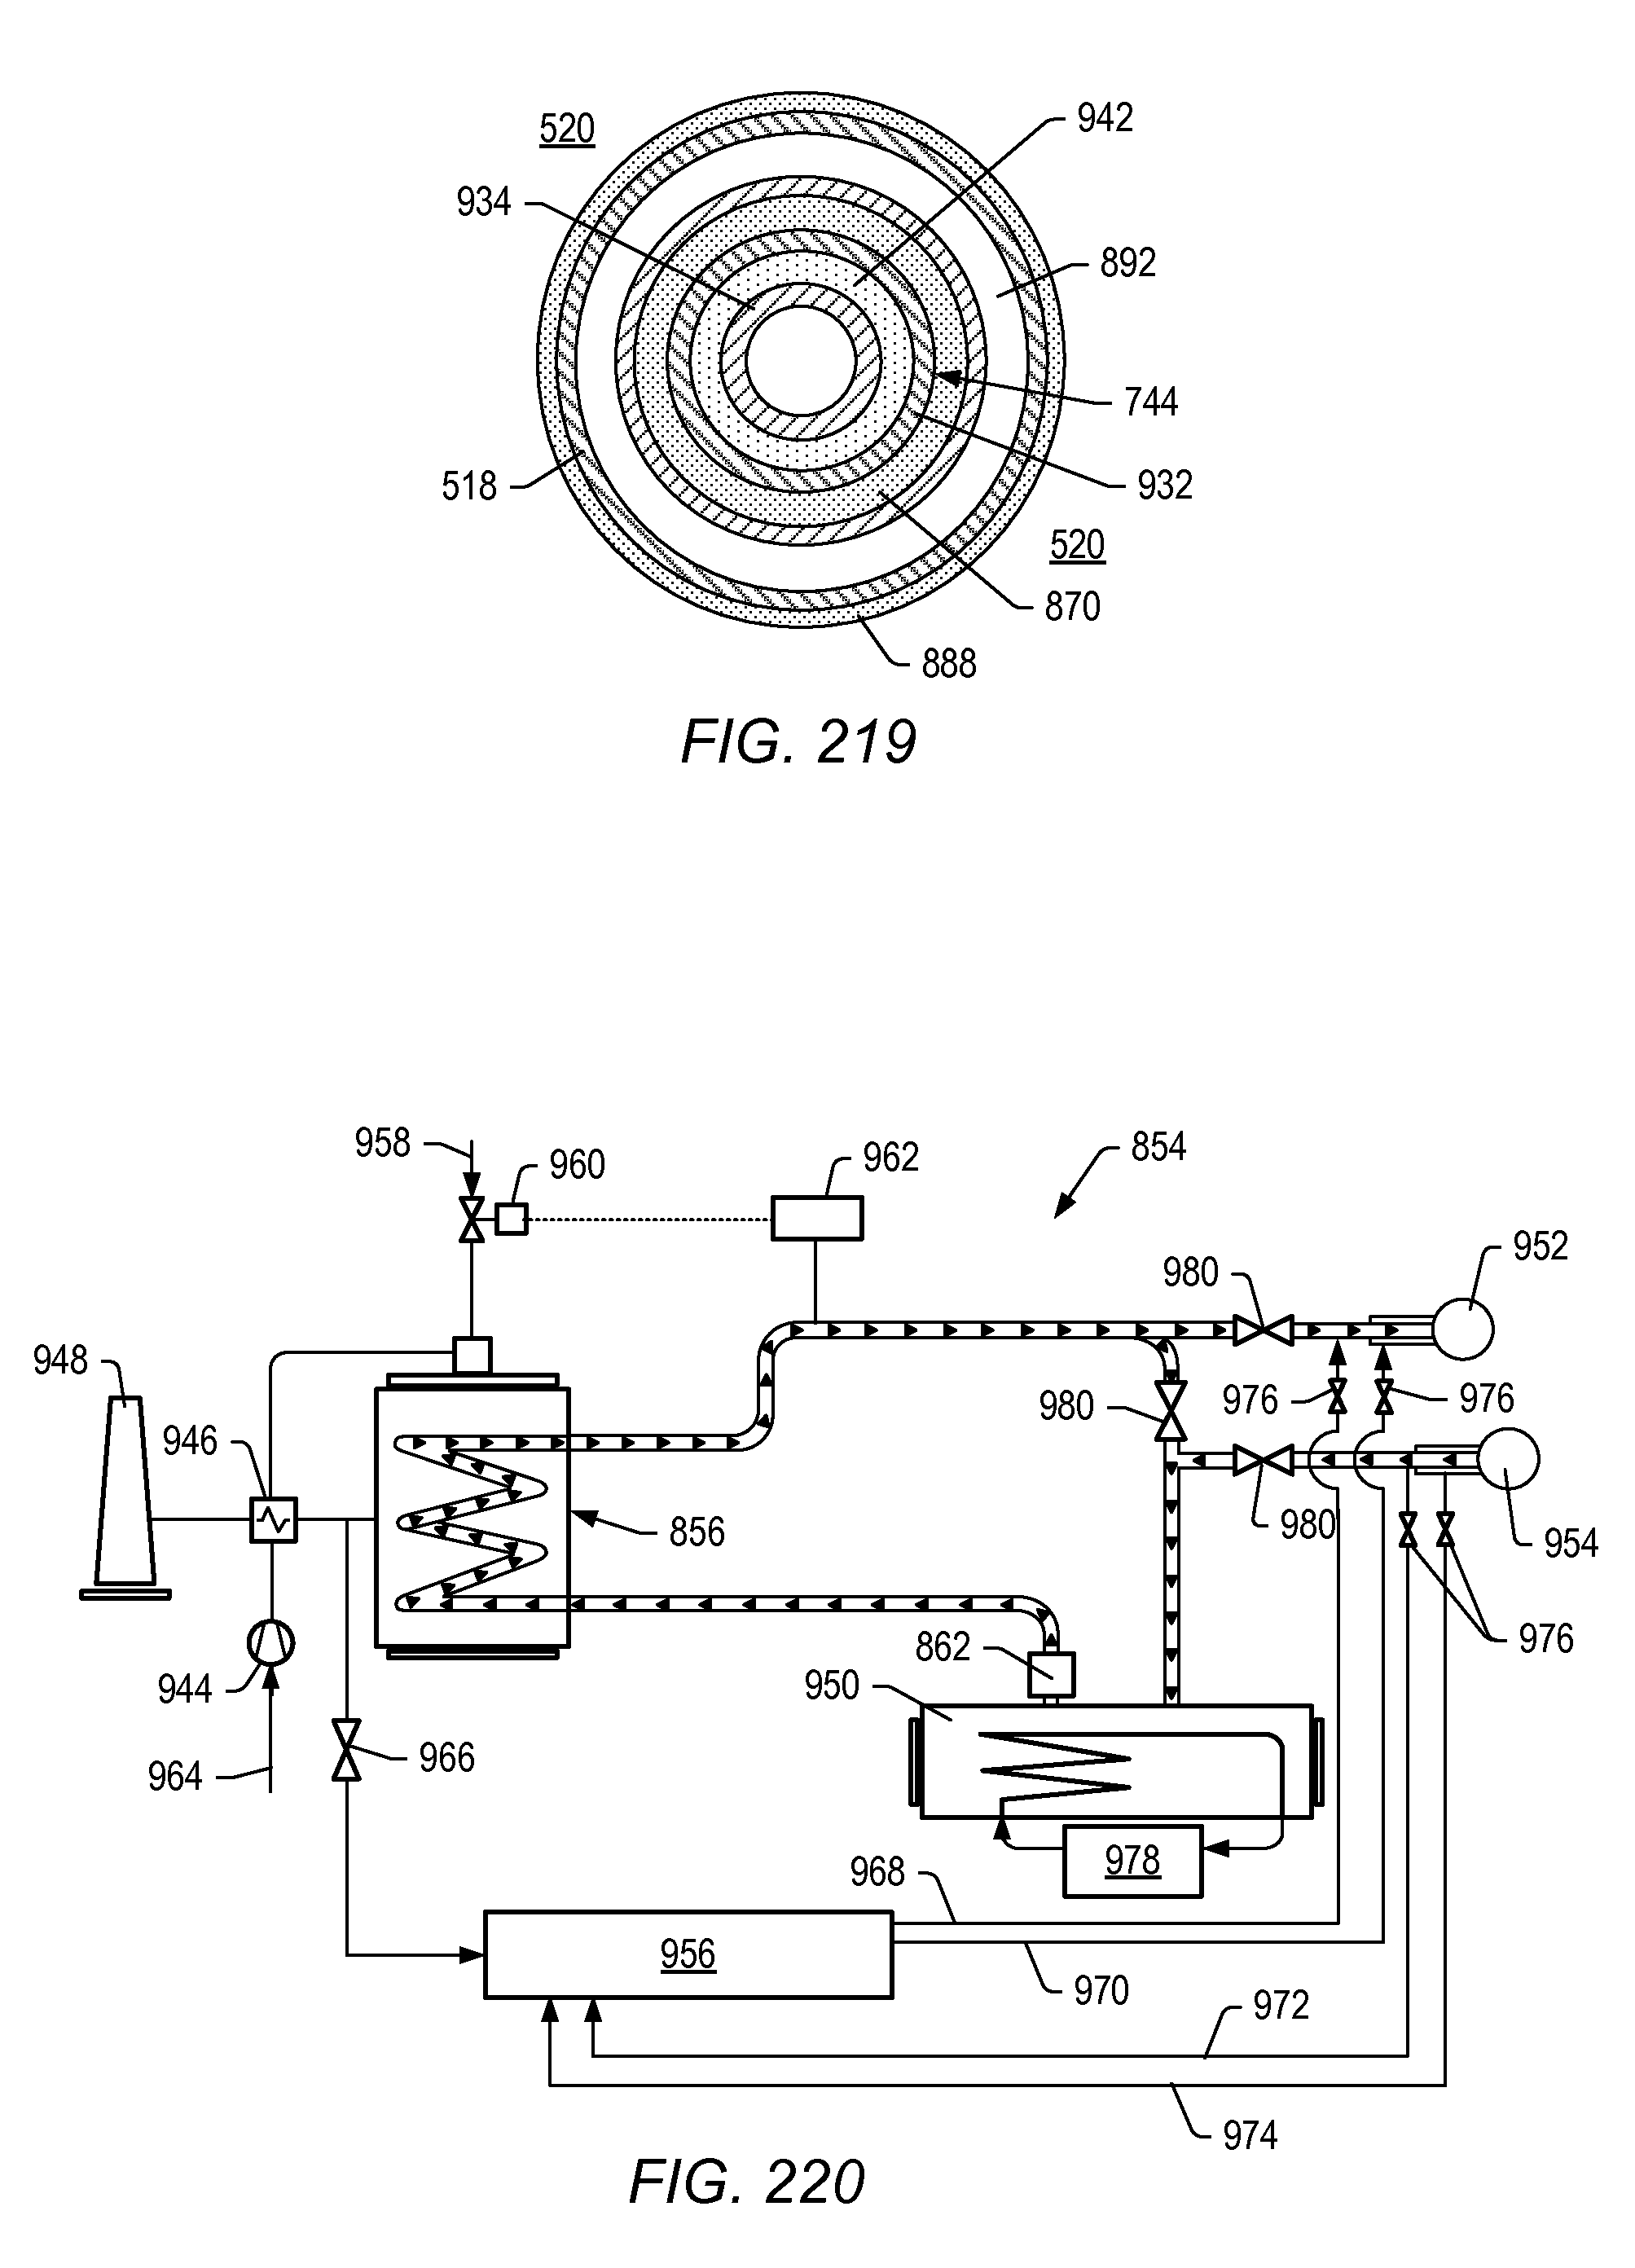 Patent Us 9528322 B2 Inertia Fuel Shut Off Switch On 2000 S10 Pump Wiring Diagram Images